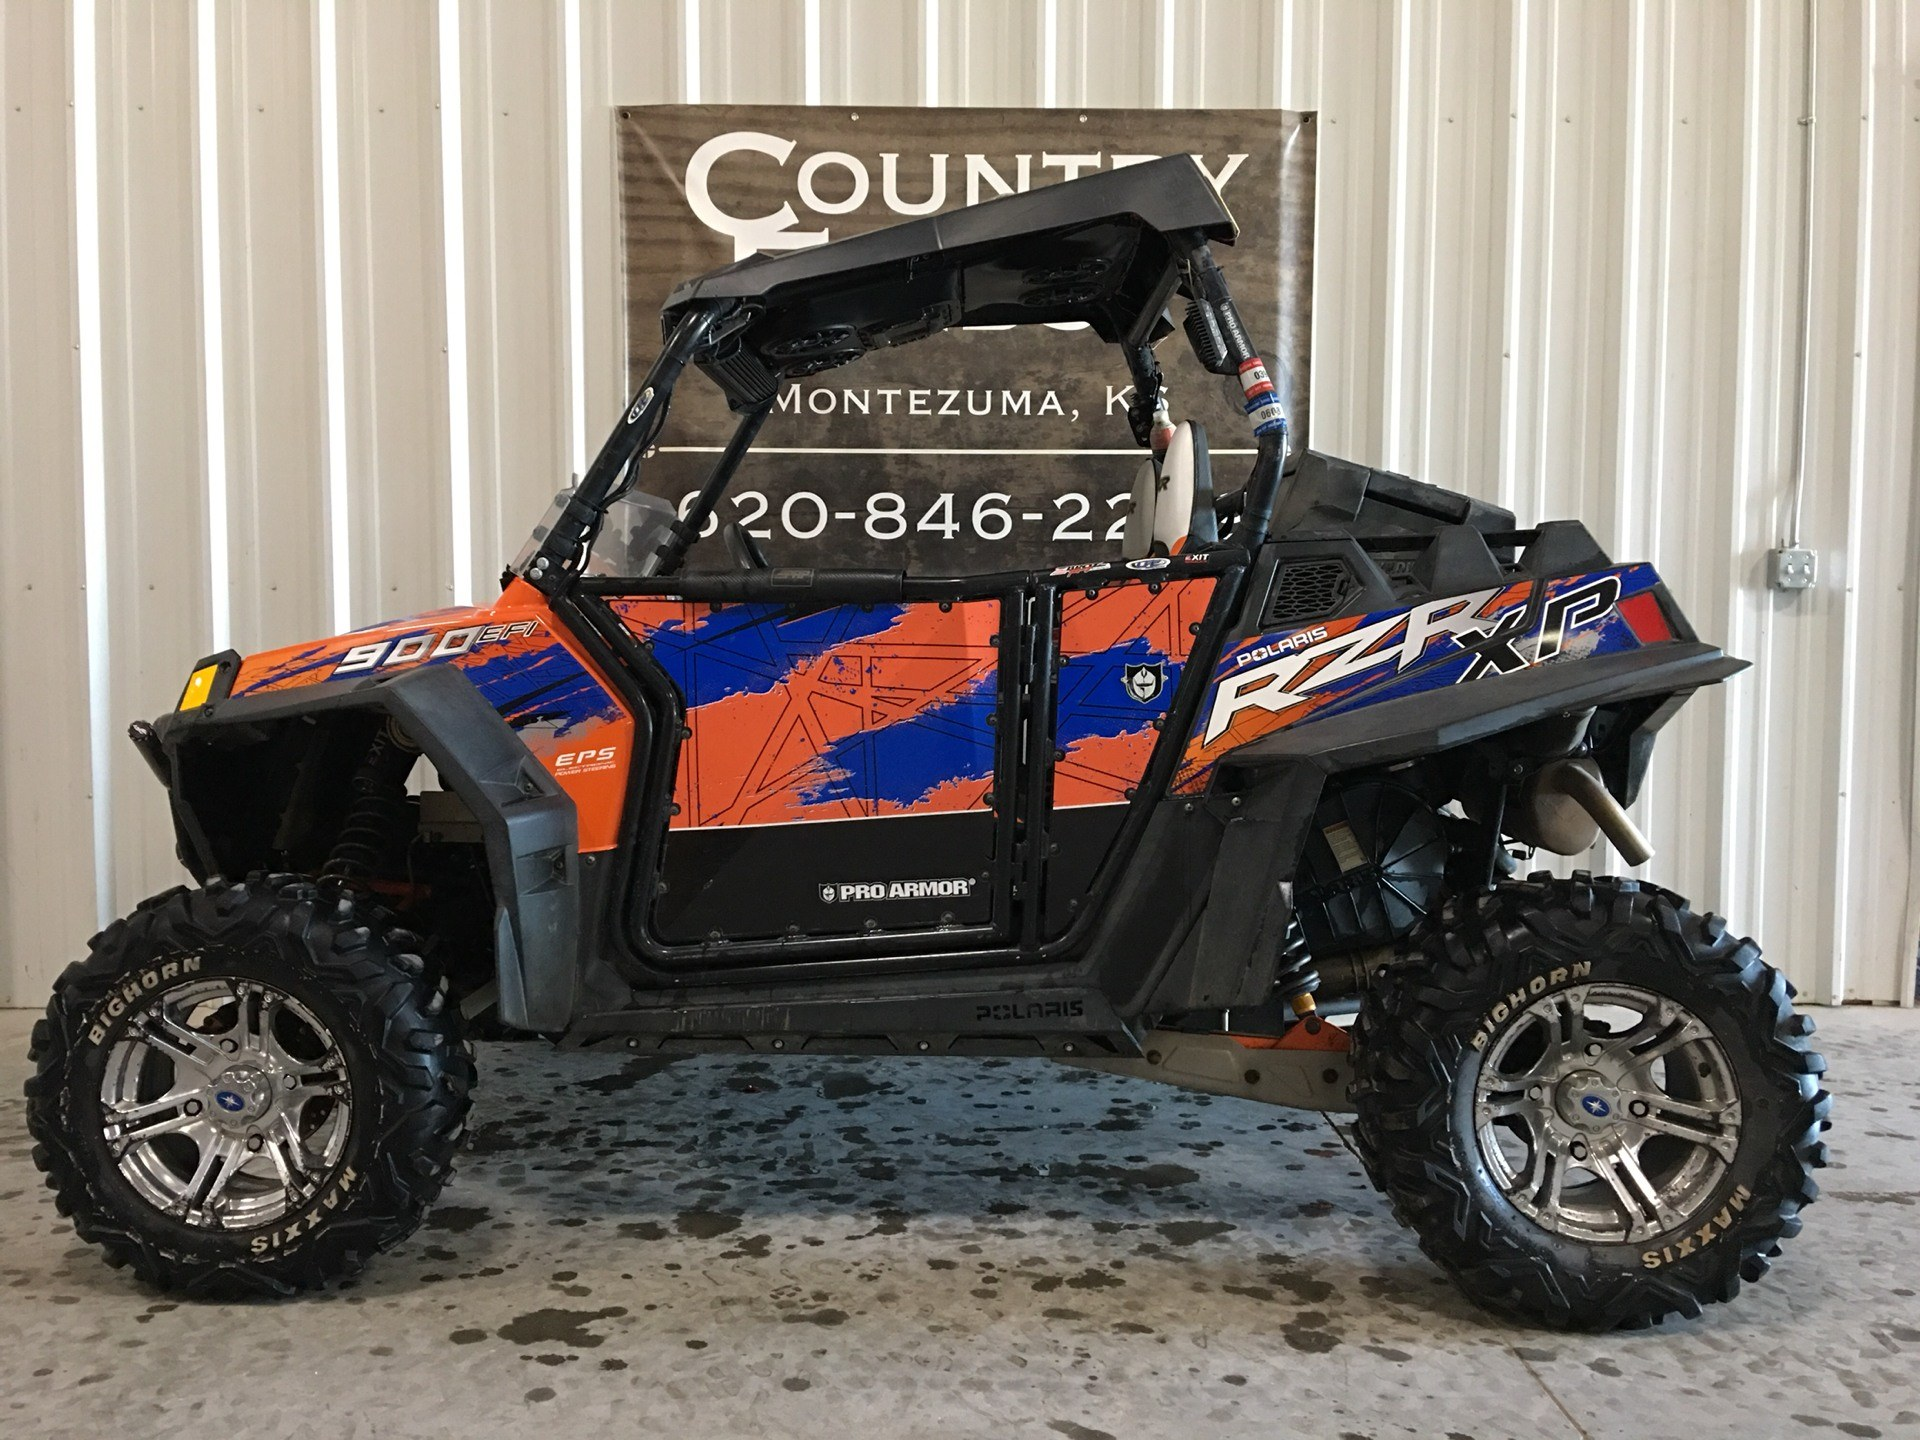 2013 Polaris RZR® XP 900 EPS LE in Montezuma, Kansas - Photo 1